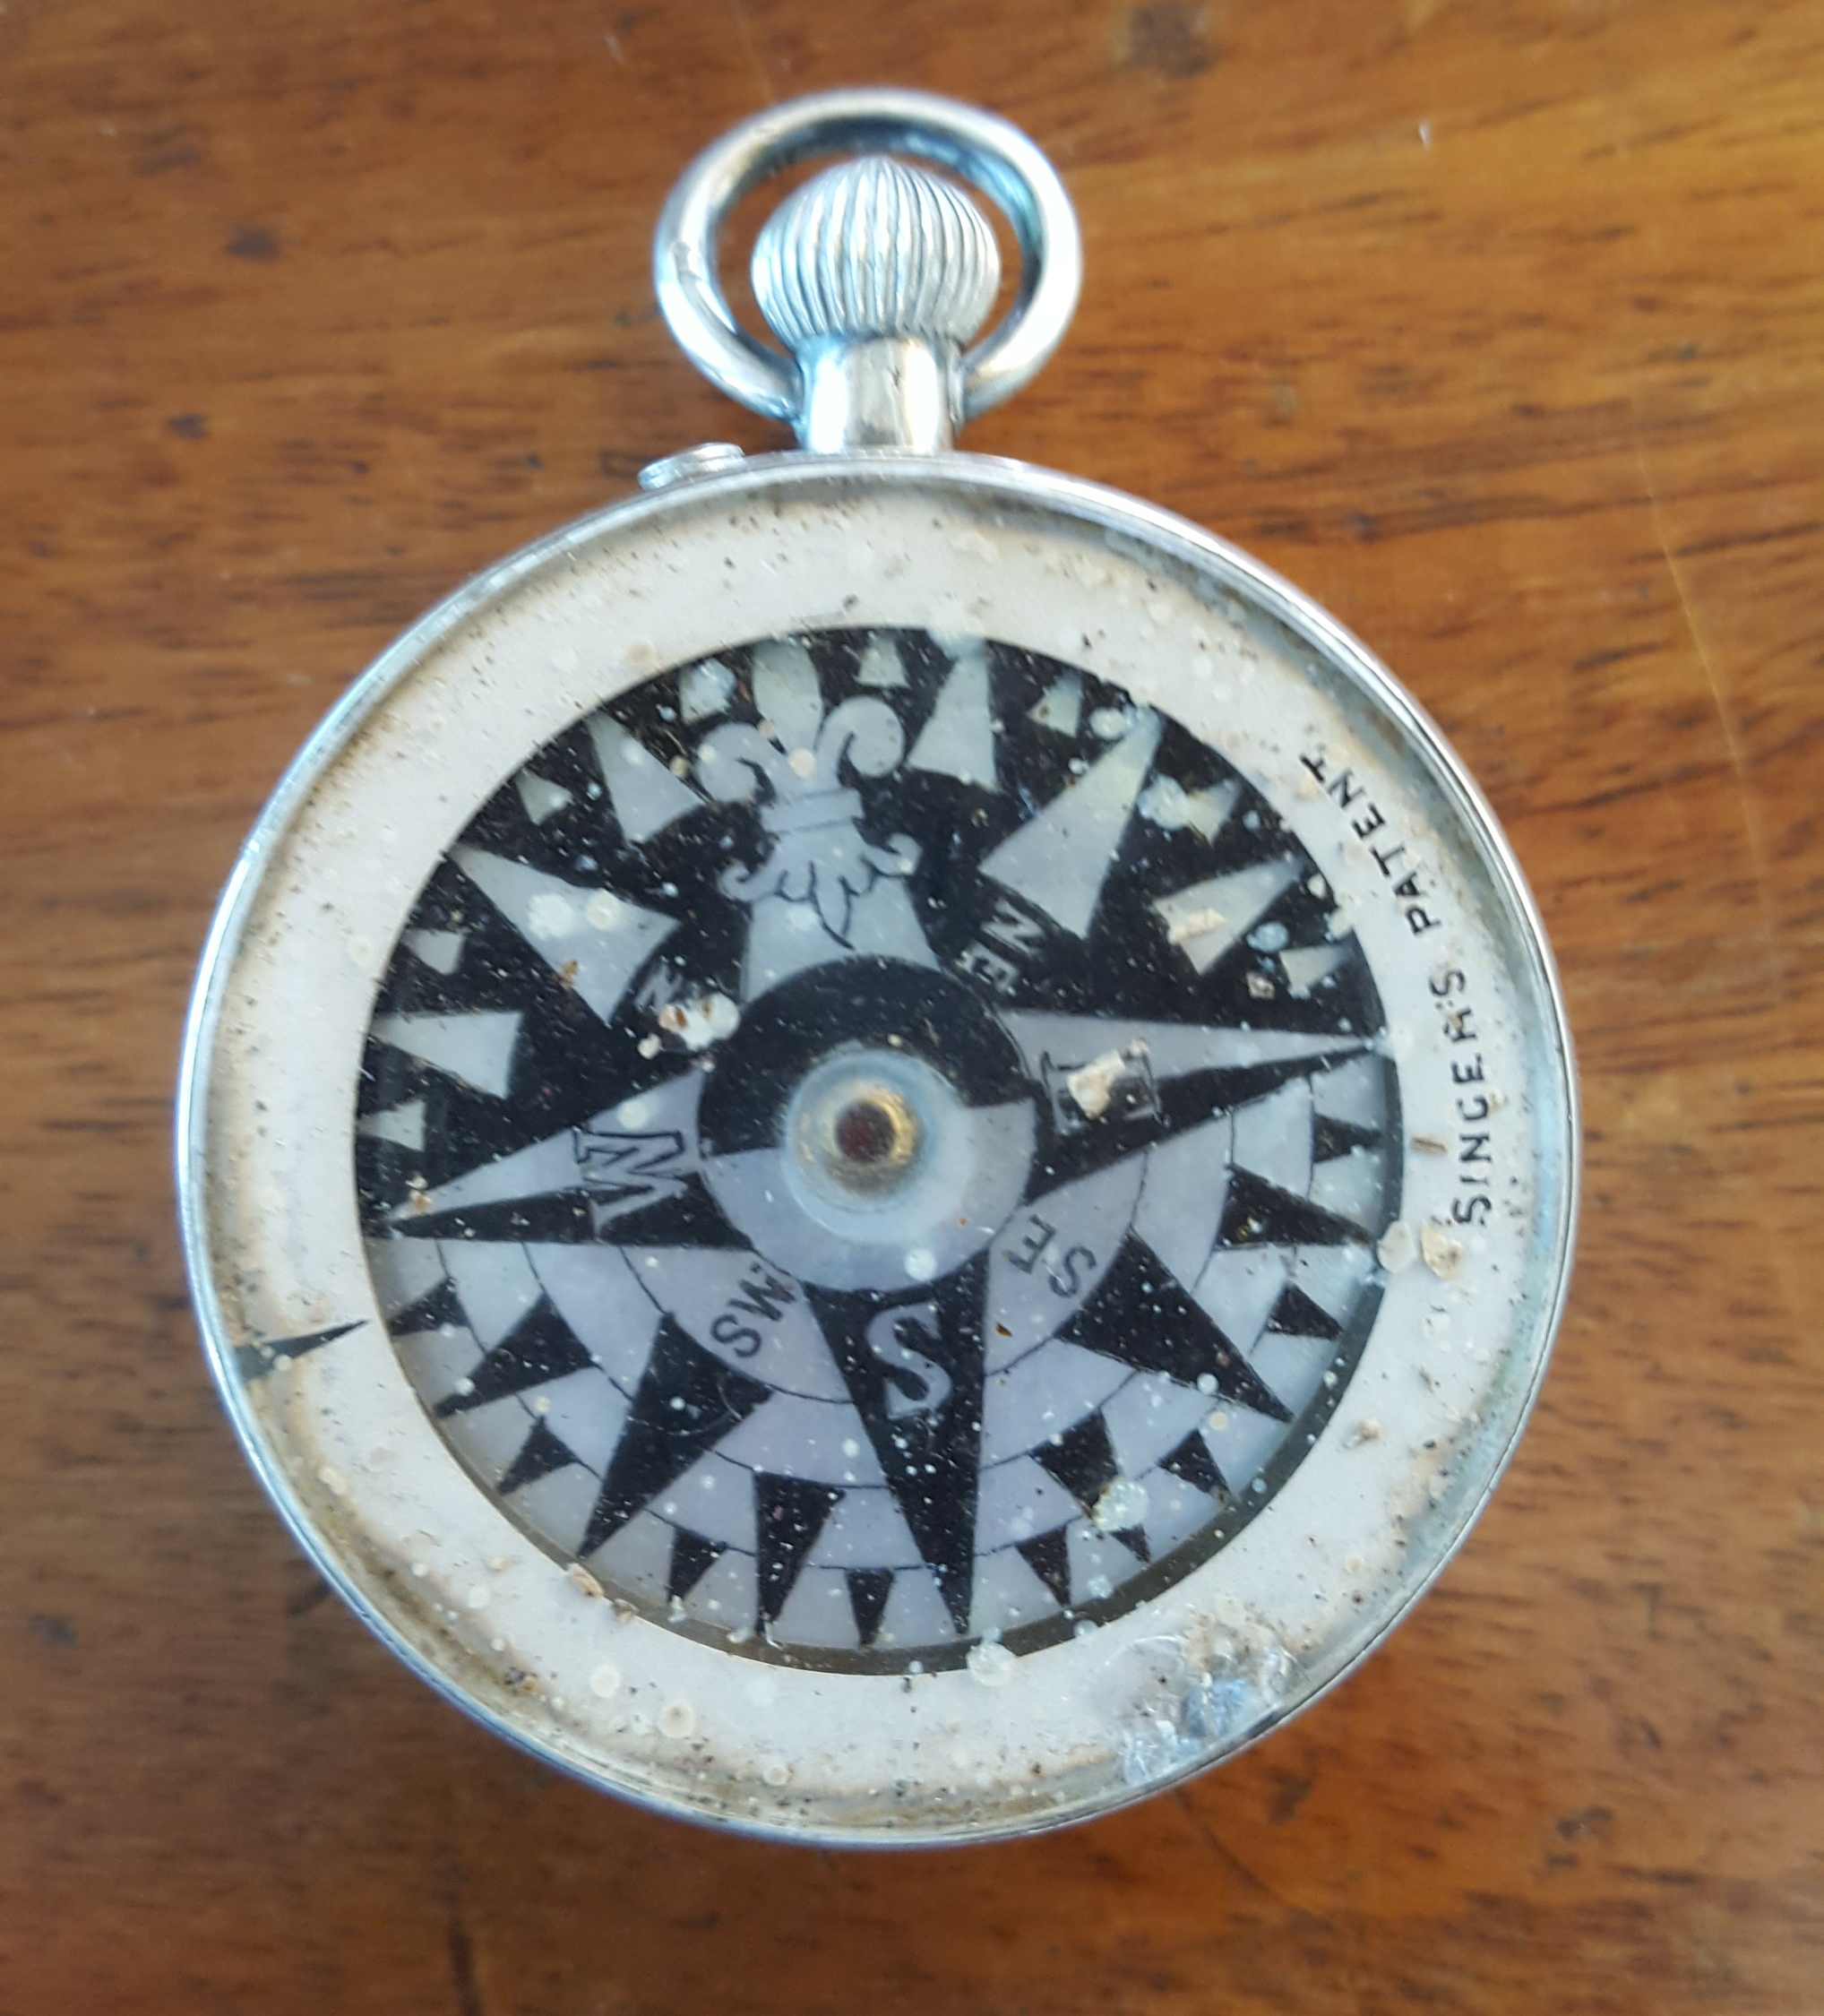 Antique Sterling Silver W Thornhill & Co. Compensated Pocket Barometer with Compass - Image 3 of 3